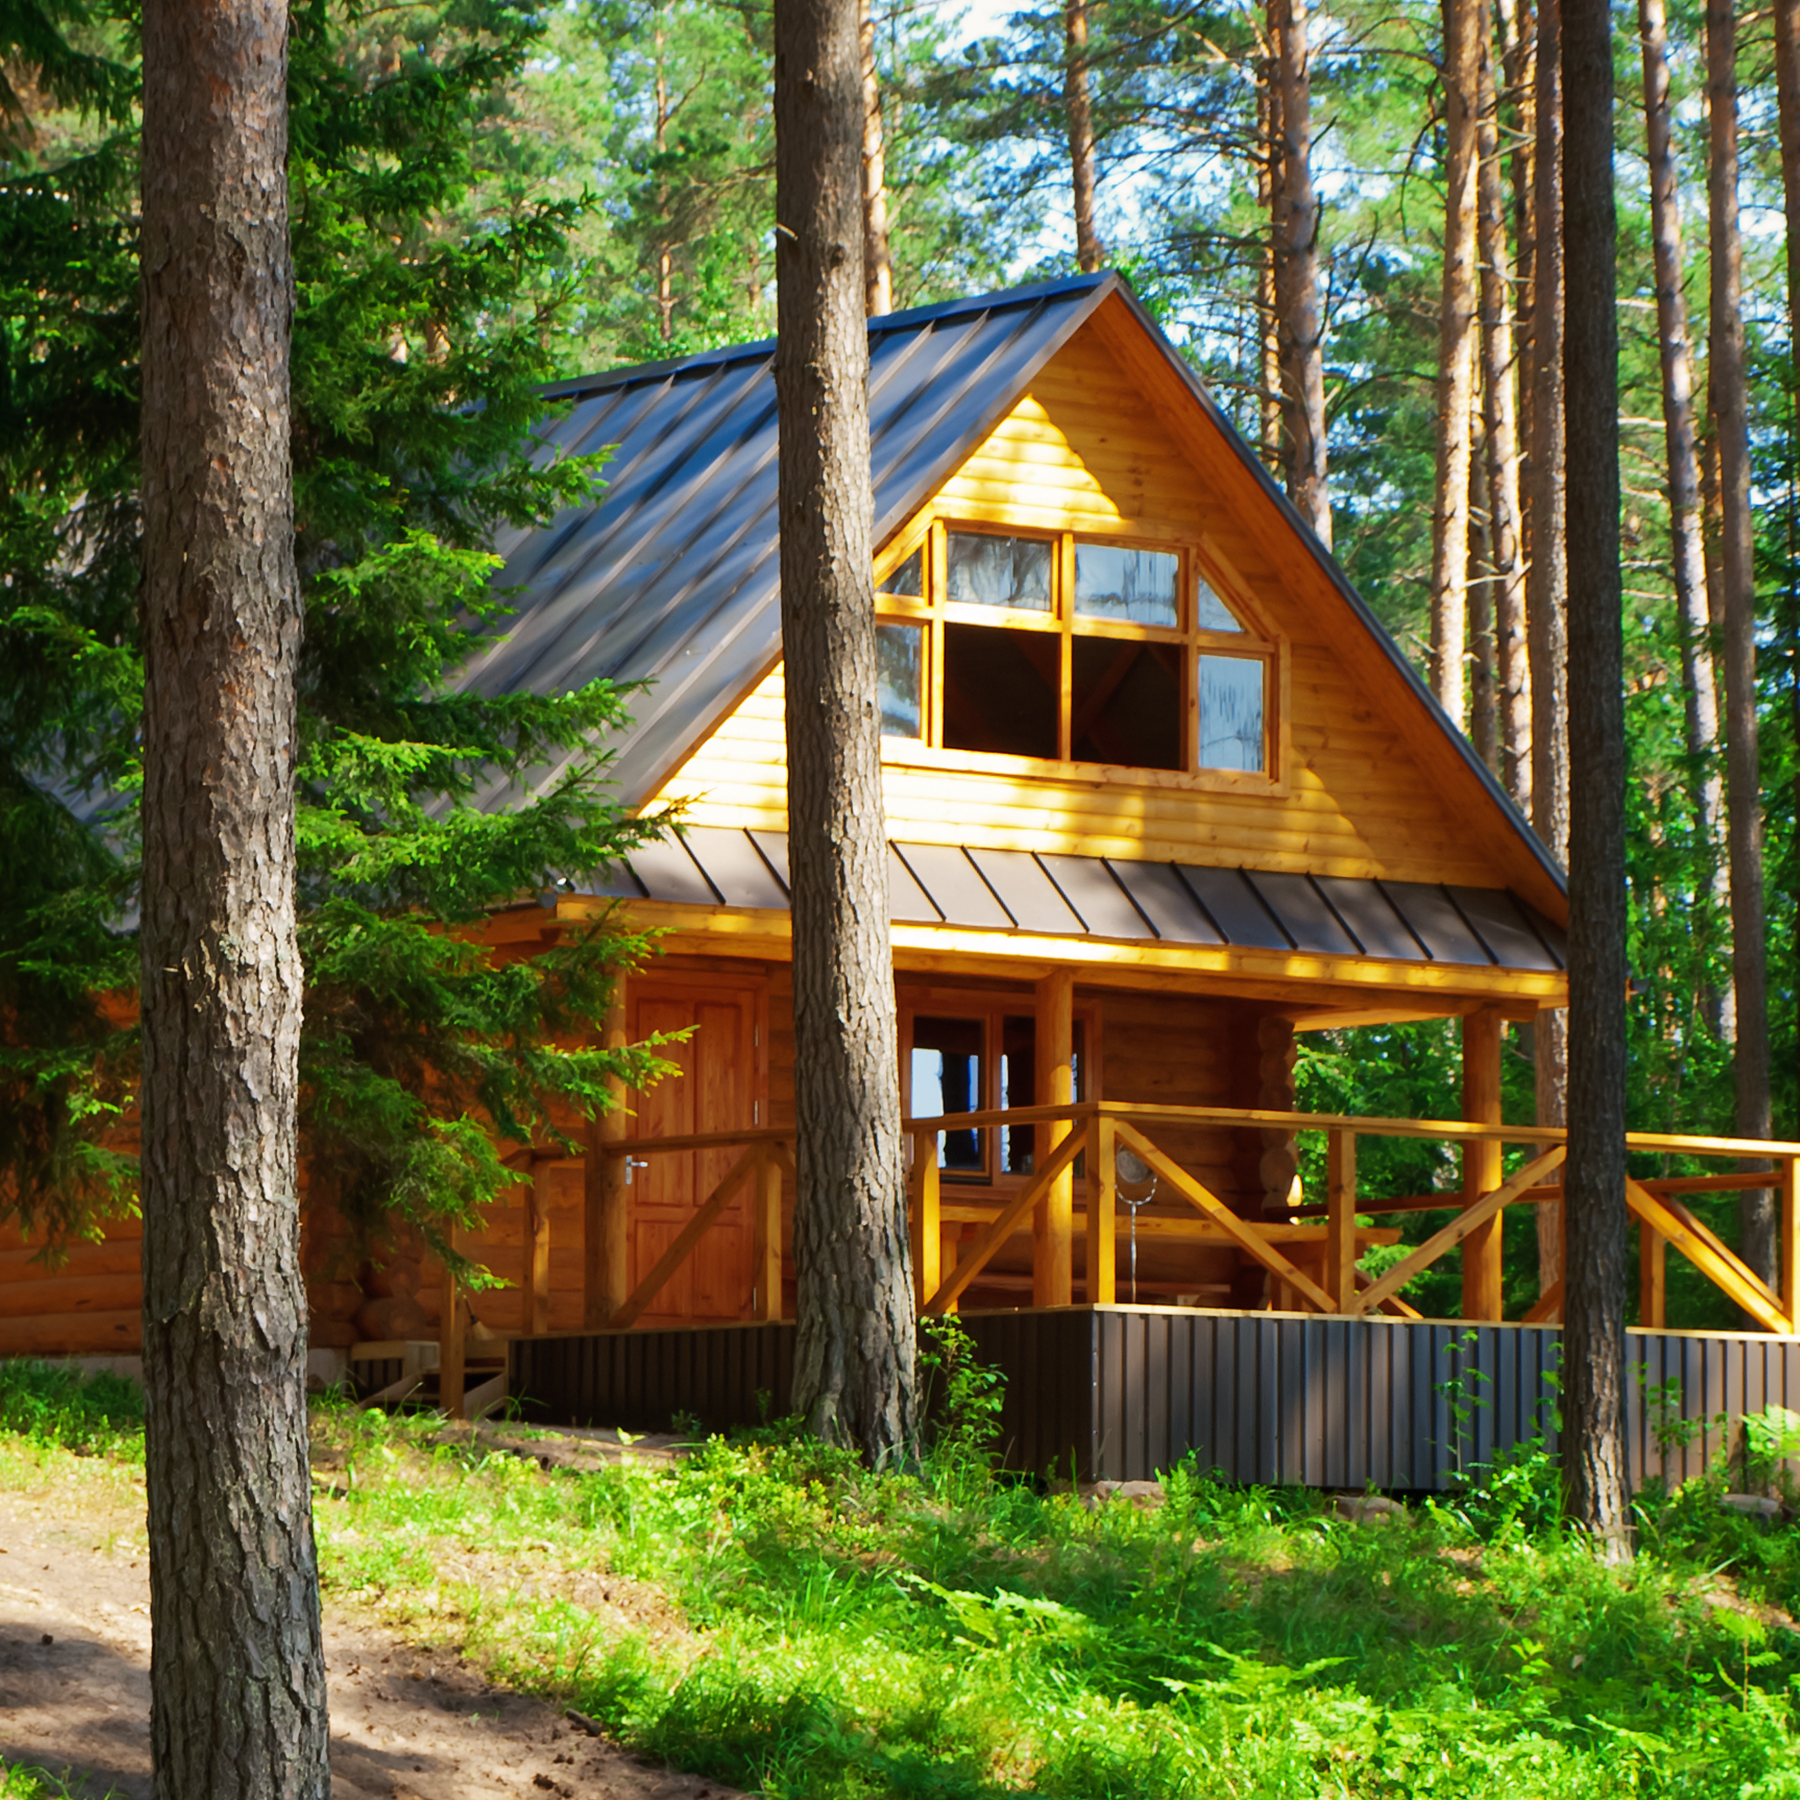 Photo of a cabin surrounded by pine trees